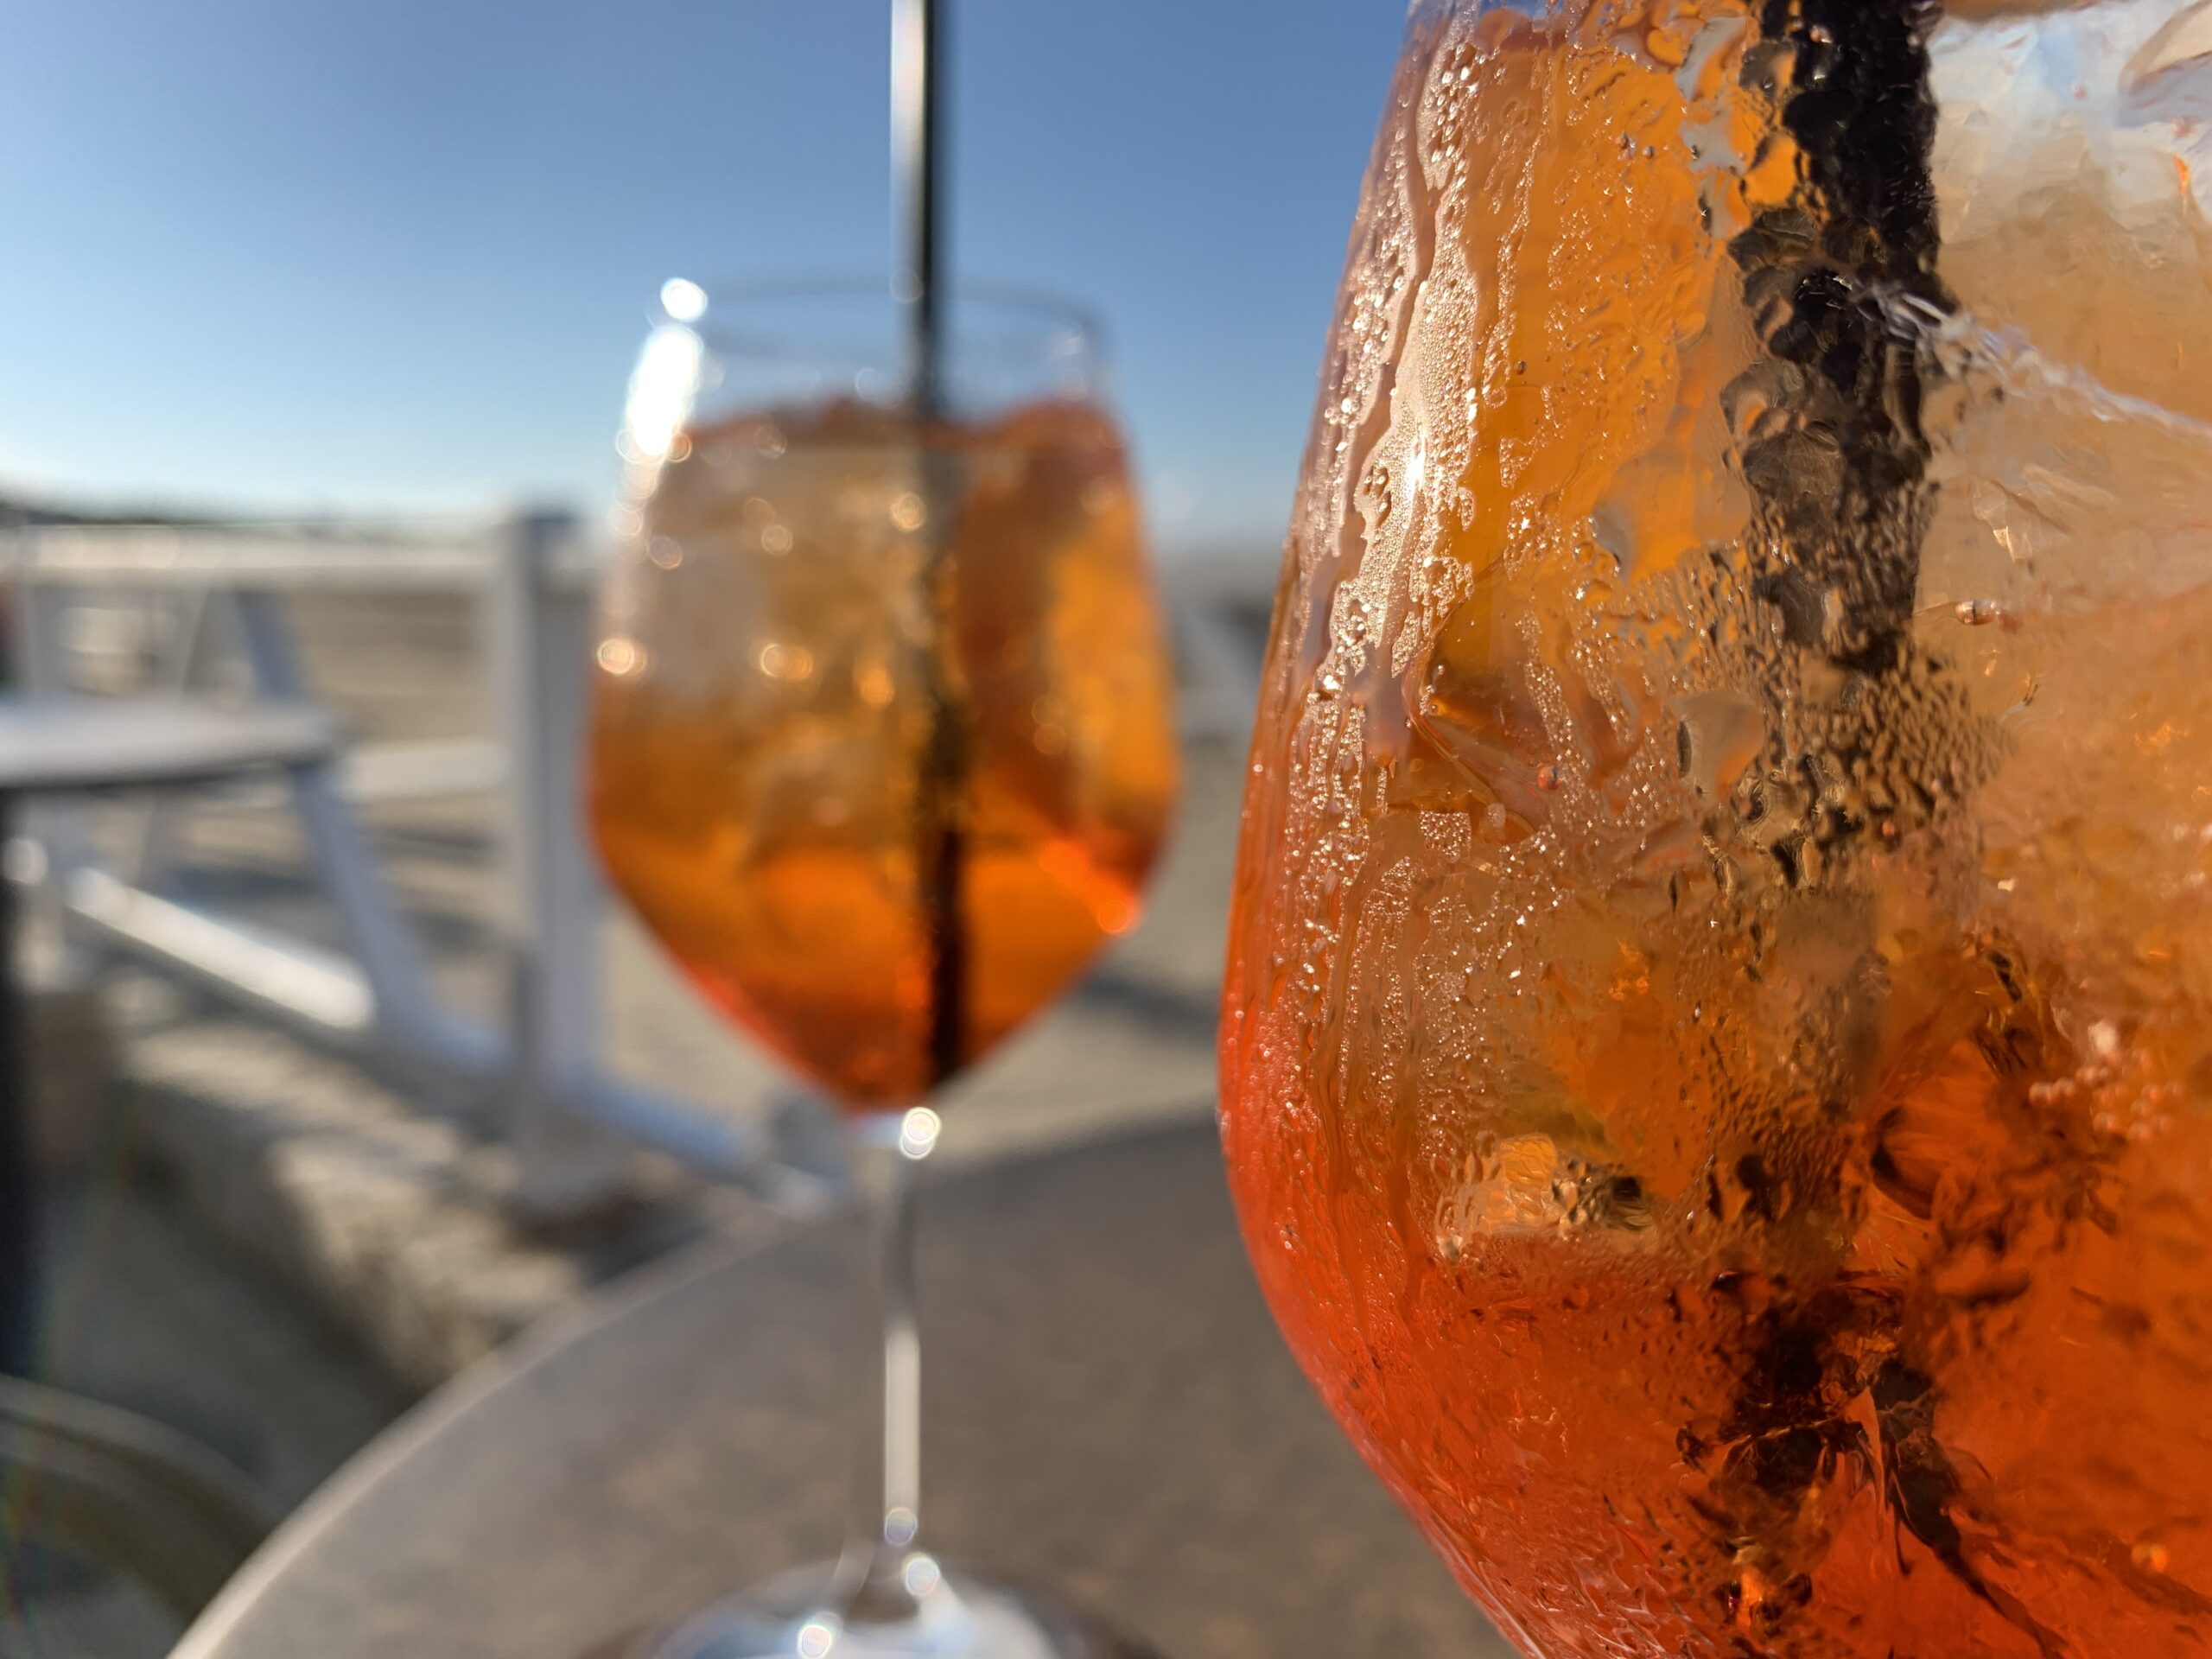 Aperol spritz - the Big Gay Podcast from Puglia gay travel guide favourite aperitivo